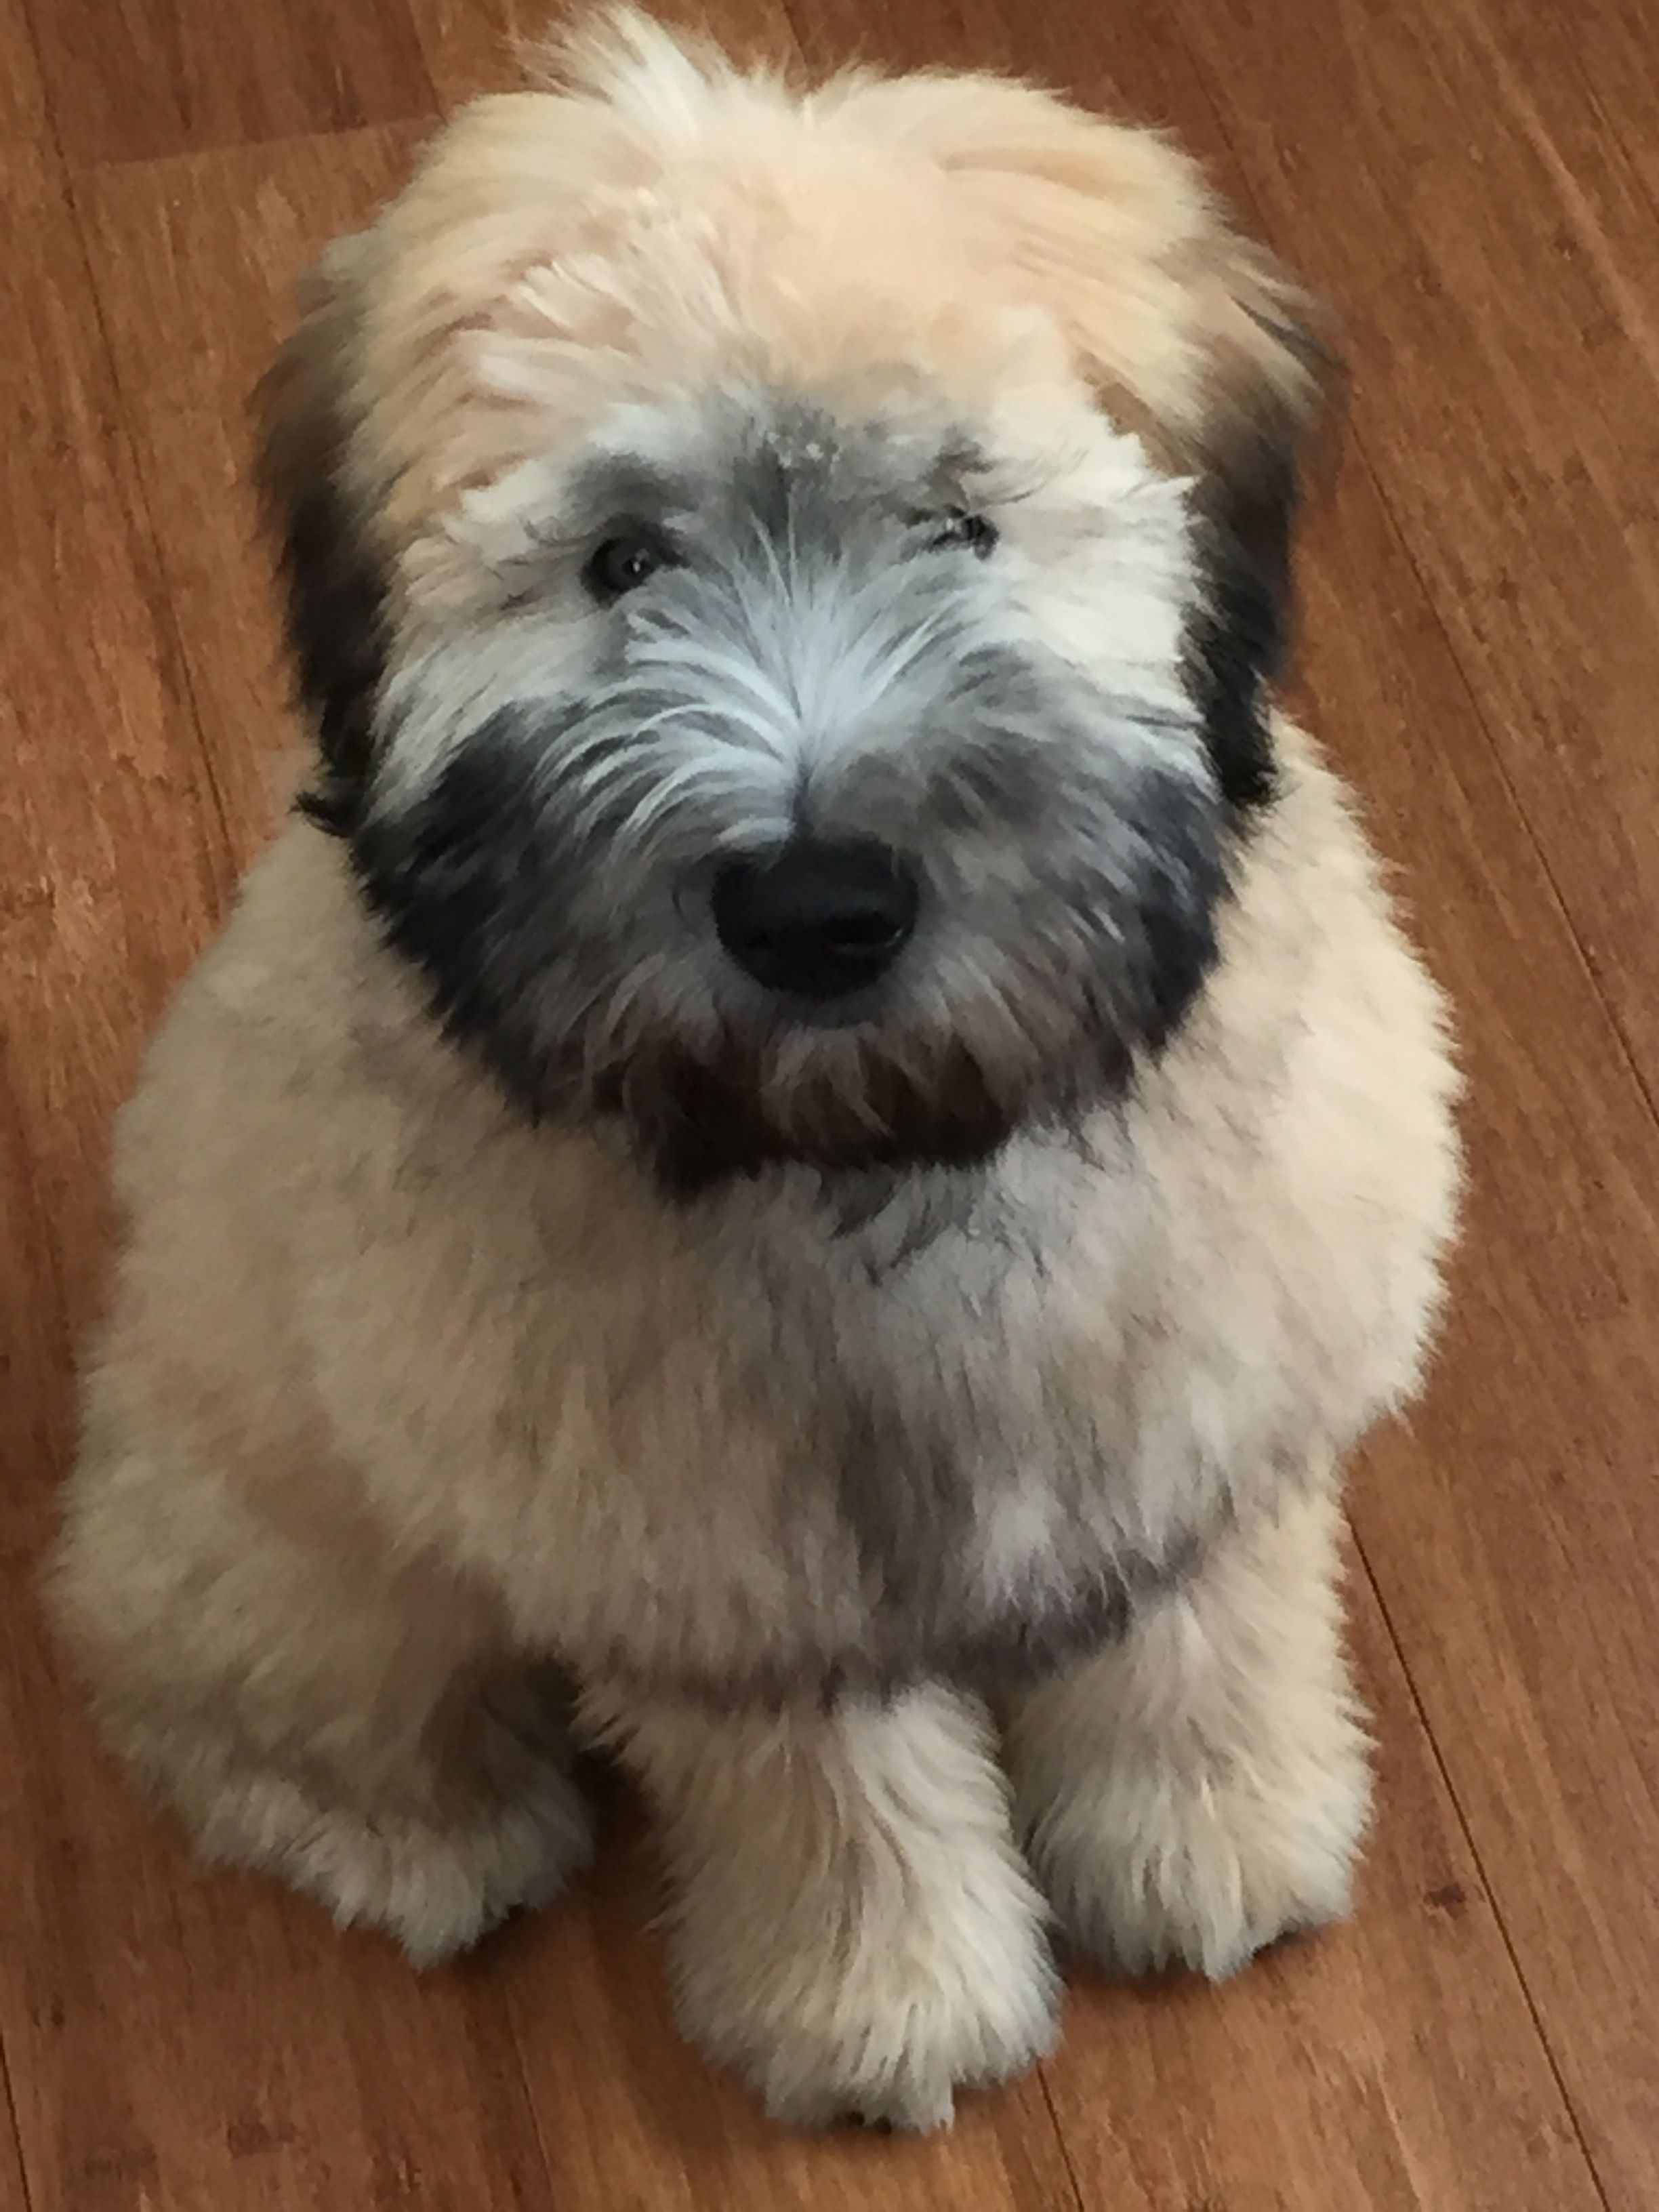 Our 5 Month Old Puppy Zilla Soft Coated Wheaten Terrier Carin Terrier Puppies Wheaten Terrier Puppy Wheaton Terrier